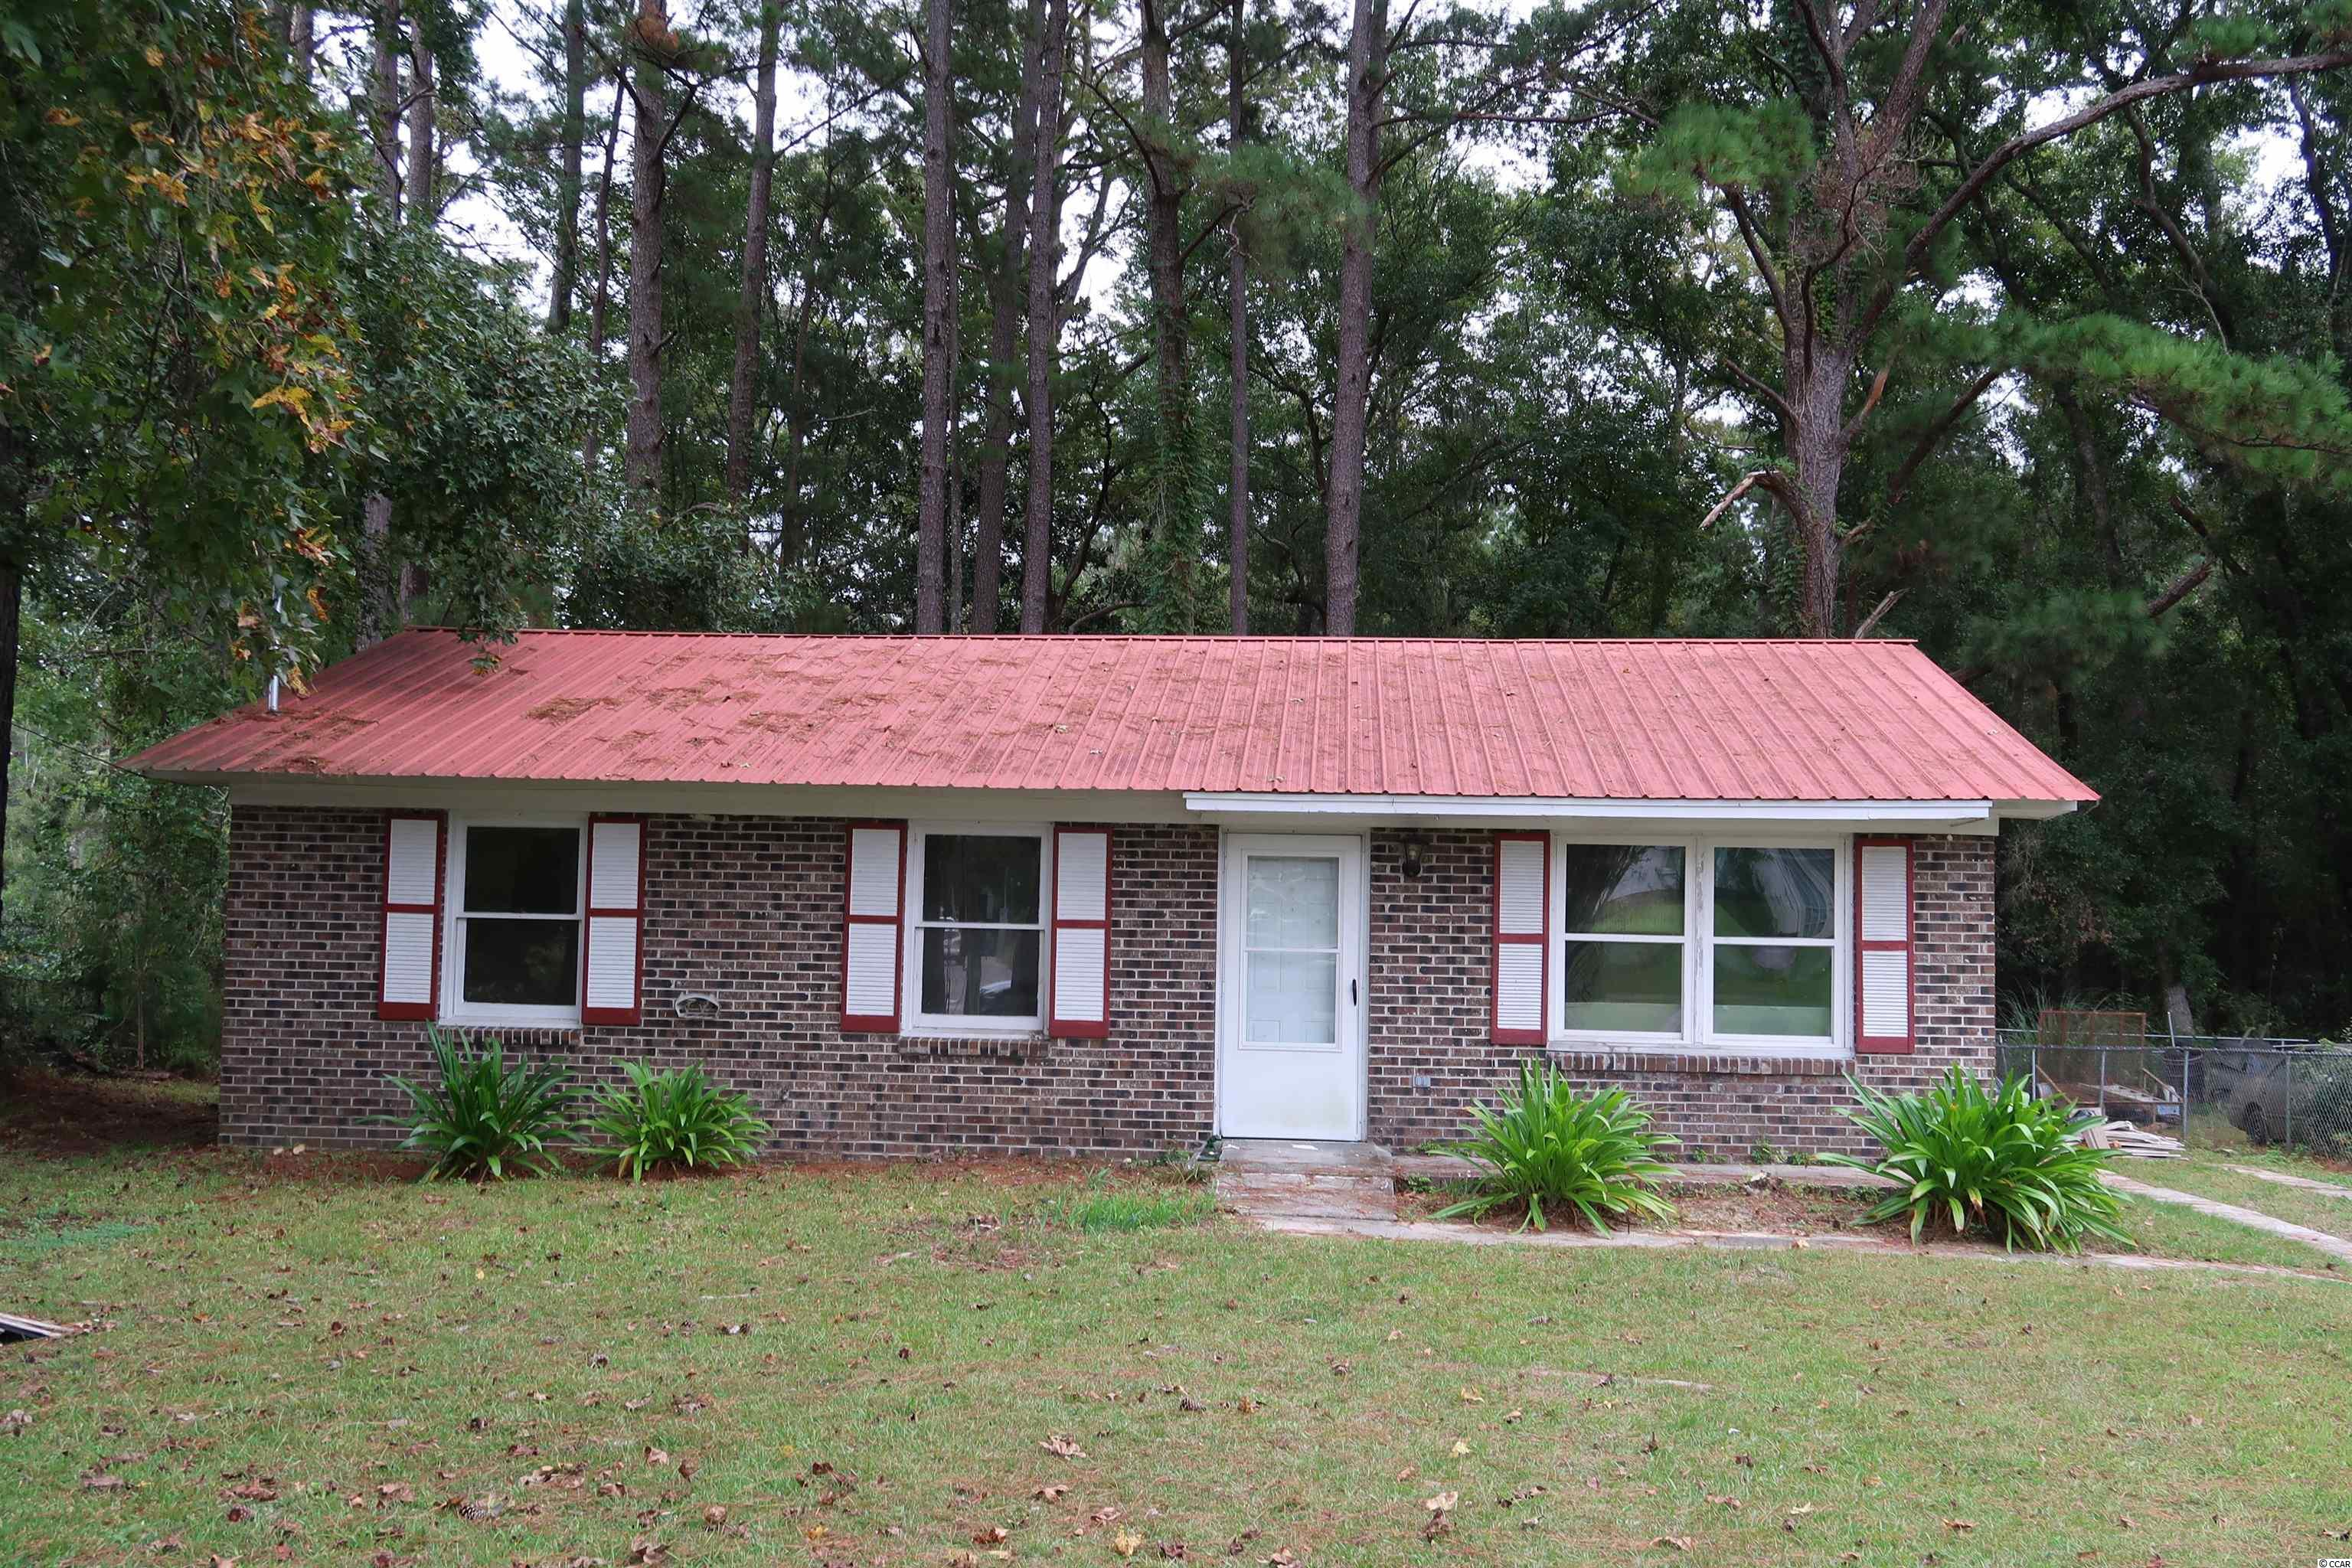 If you have been looking for a home to remodel this property is perfect for you! This property needs plenty of TLC. The home sits on a large 0.44 acre lot with No HOA in the quiet White's Creek Subdivision. Schedule your showing today!